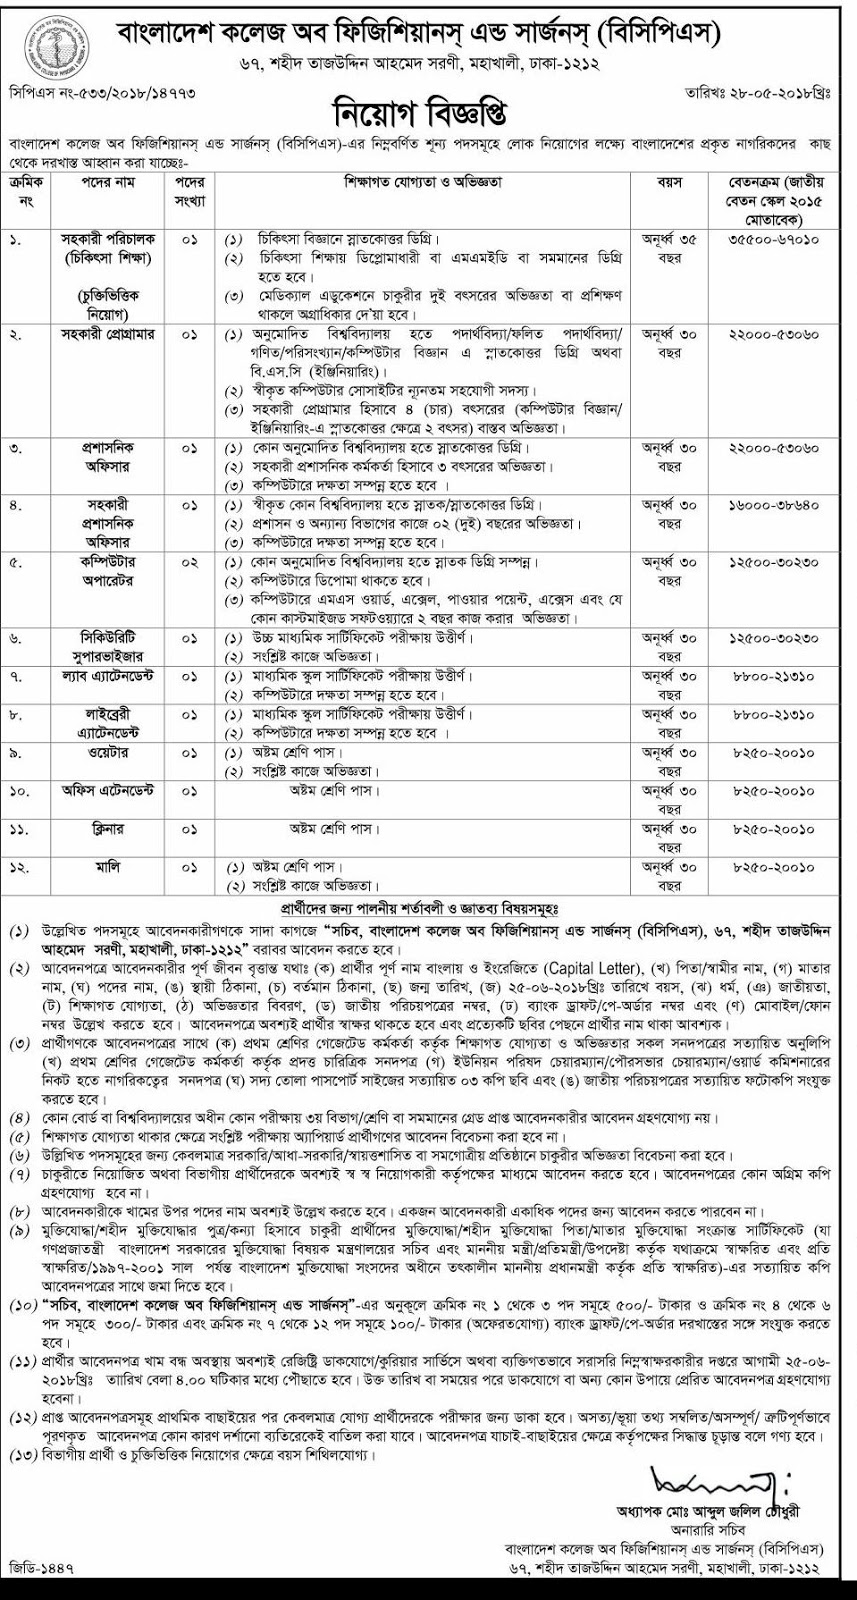 BCPS - Bangladesh College of Physicians and Surgeons Job Circular 2018